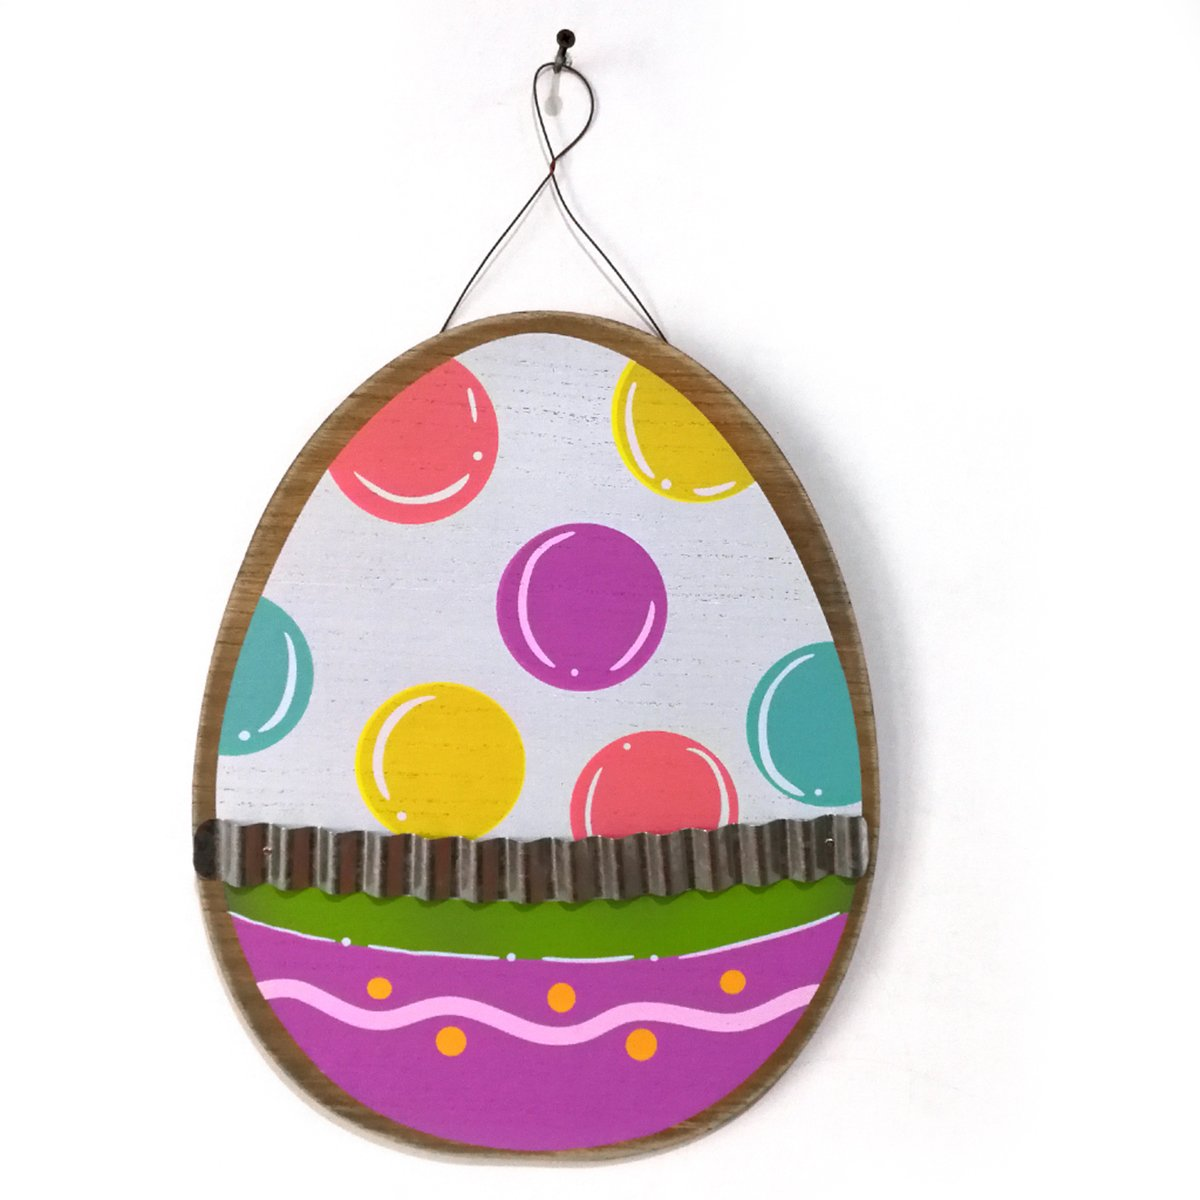 OULII Easter Egg Decoration Wooden Hanging Sign Wall Door Sign Board Home Shop Decoraction